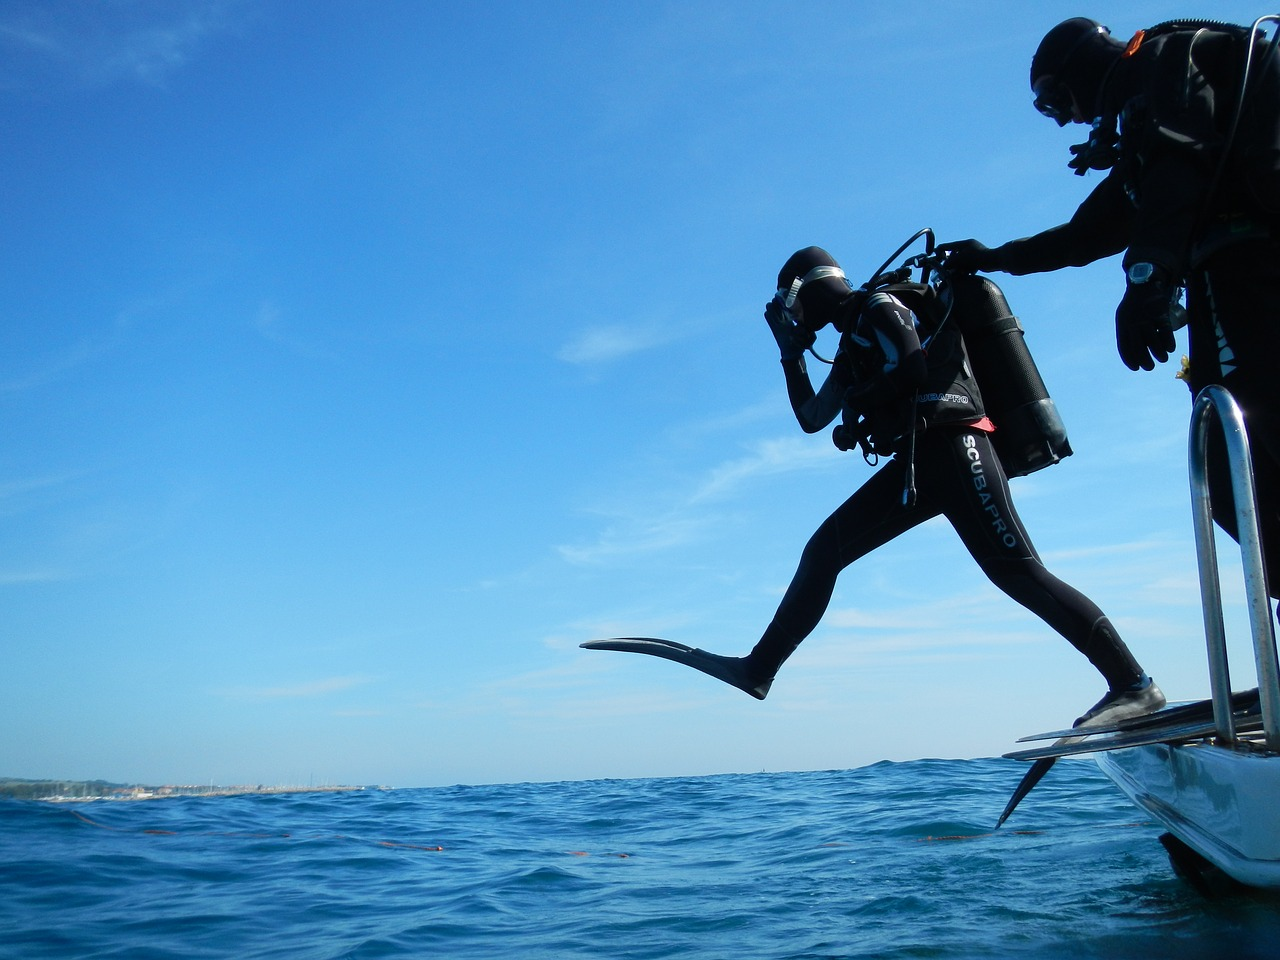 The Best Sites for ColdWater Dives